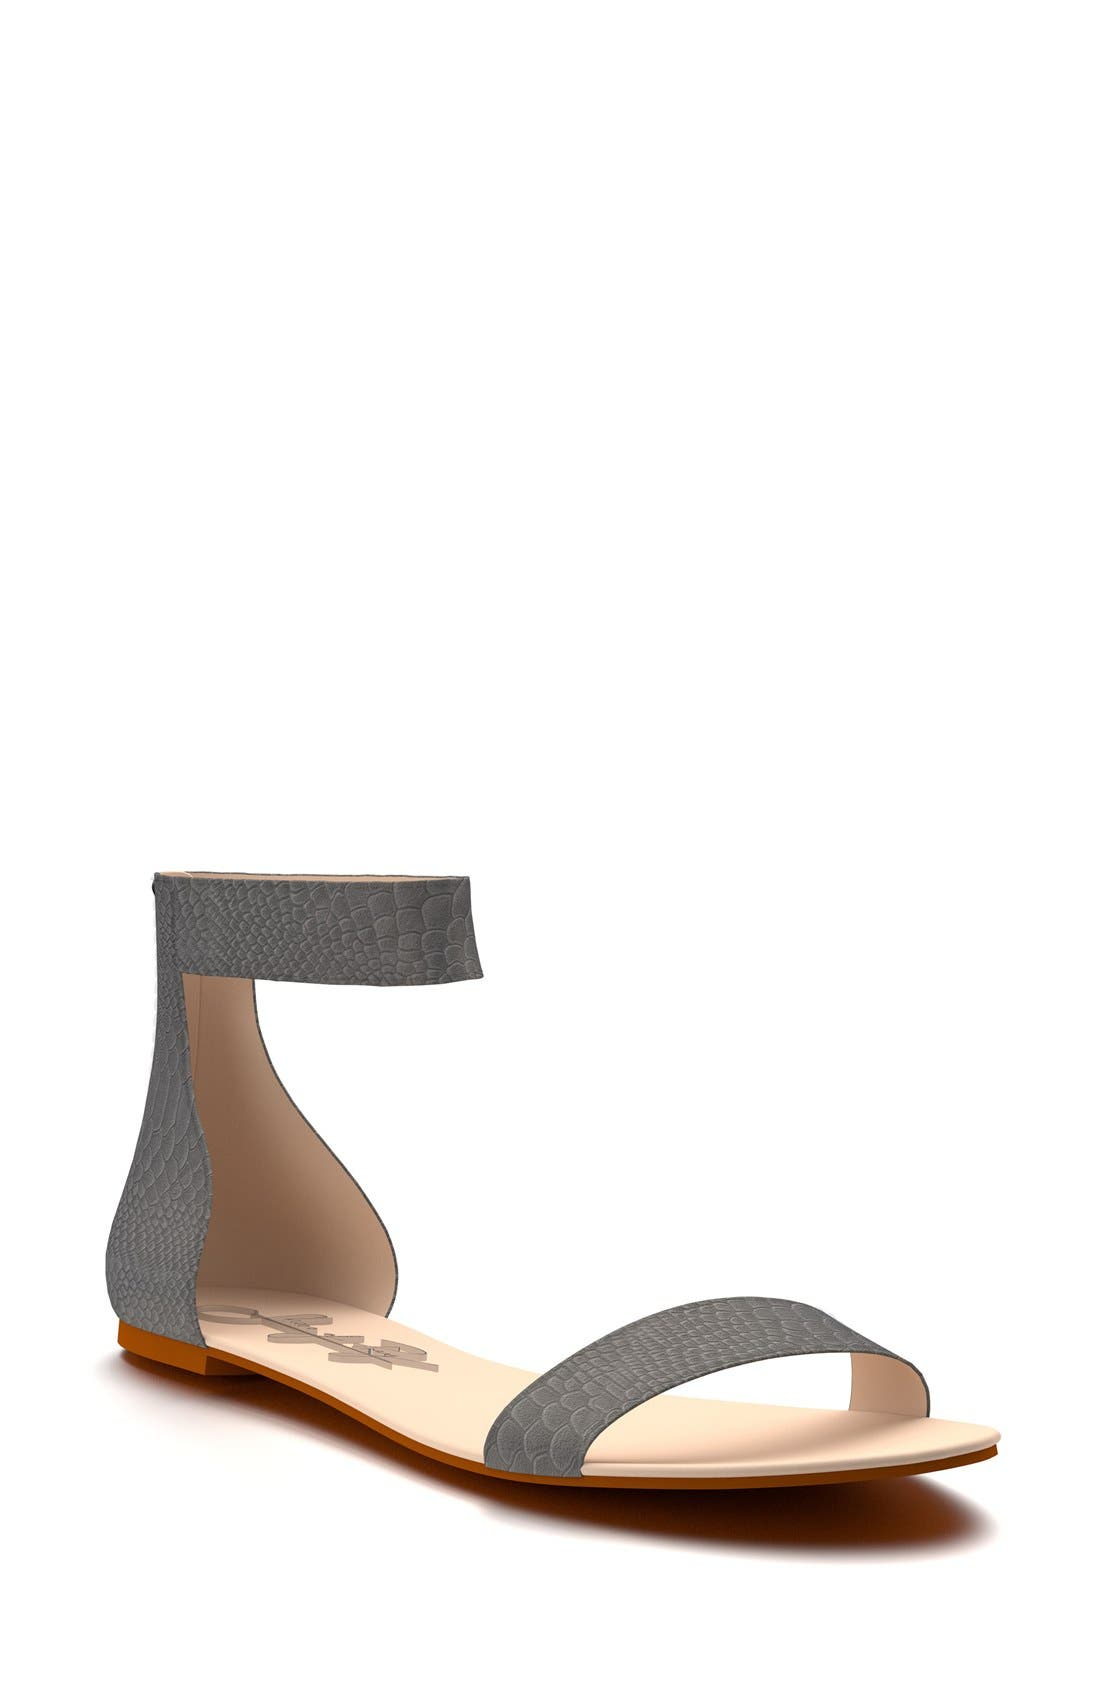 SHOES OF PREY Ankle Strap Sandal